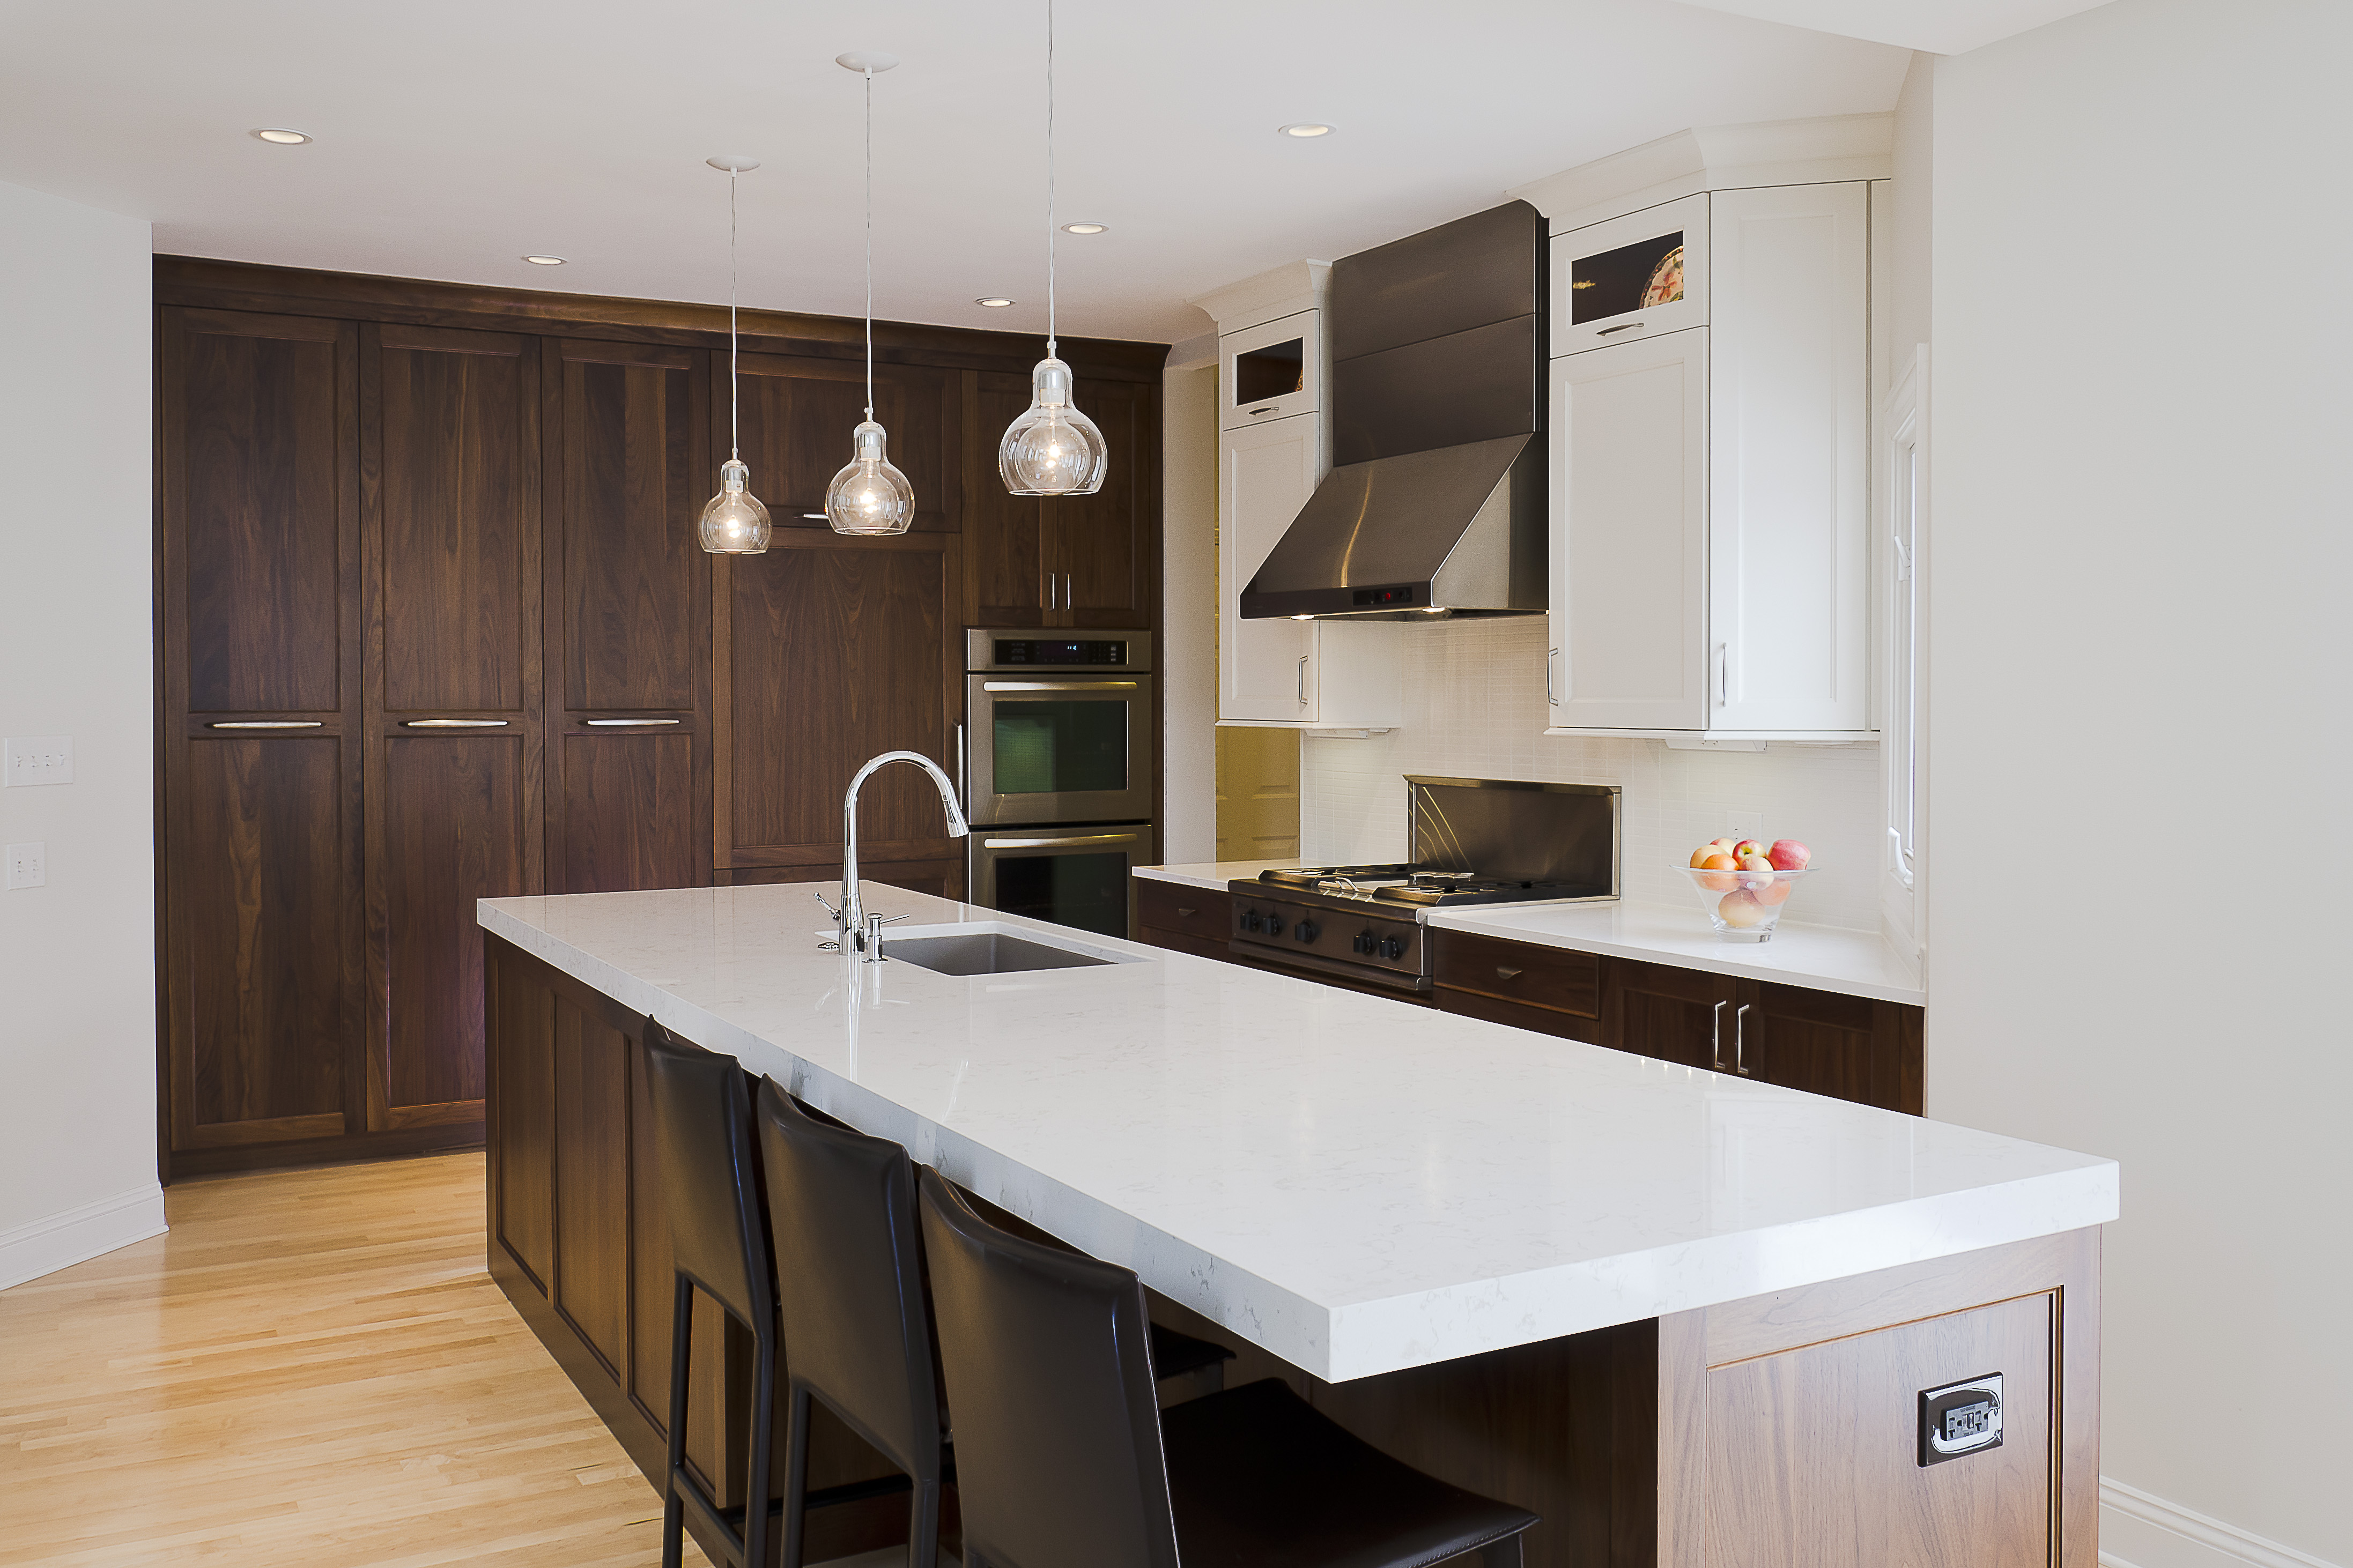 Average Cost Of Kitchen Cabinets